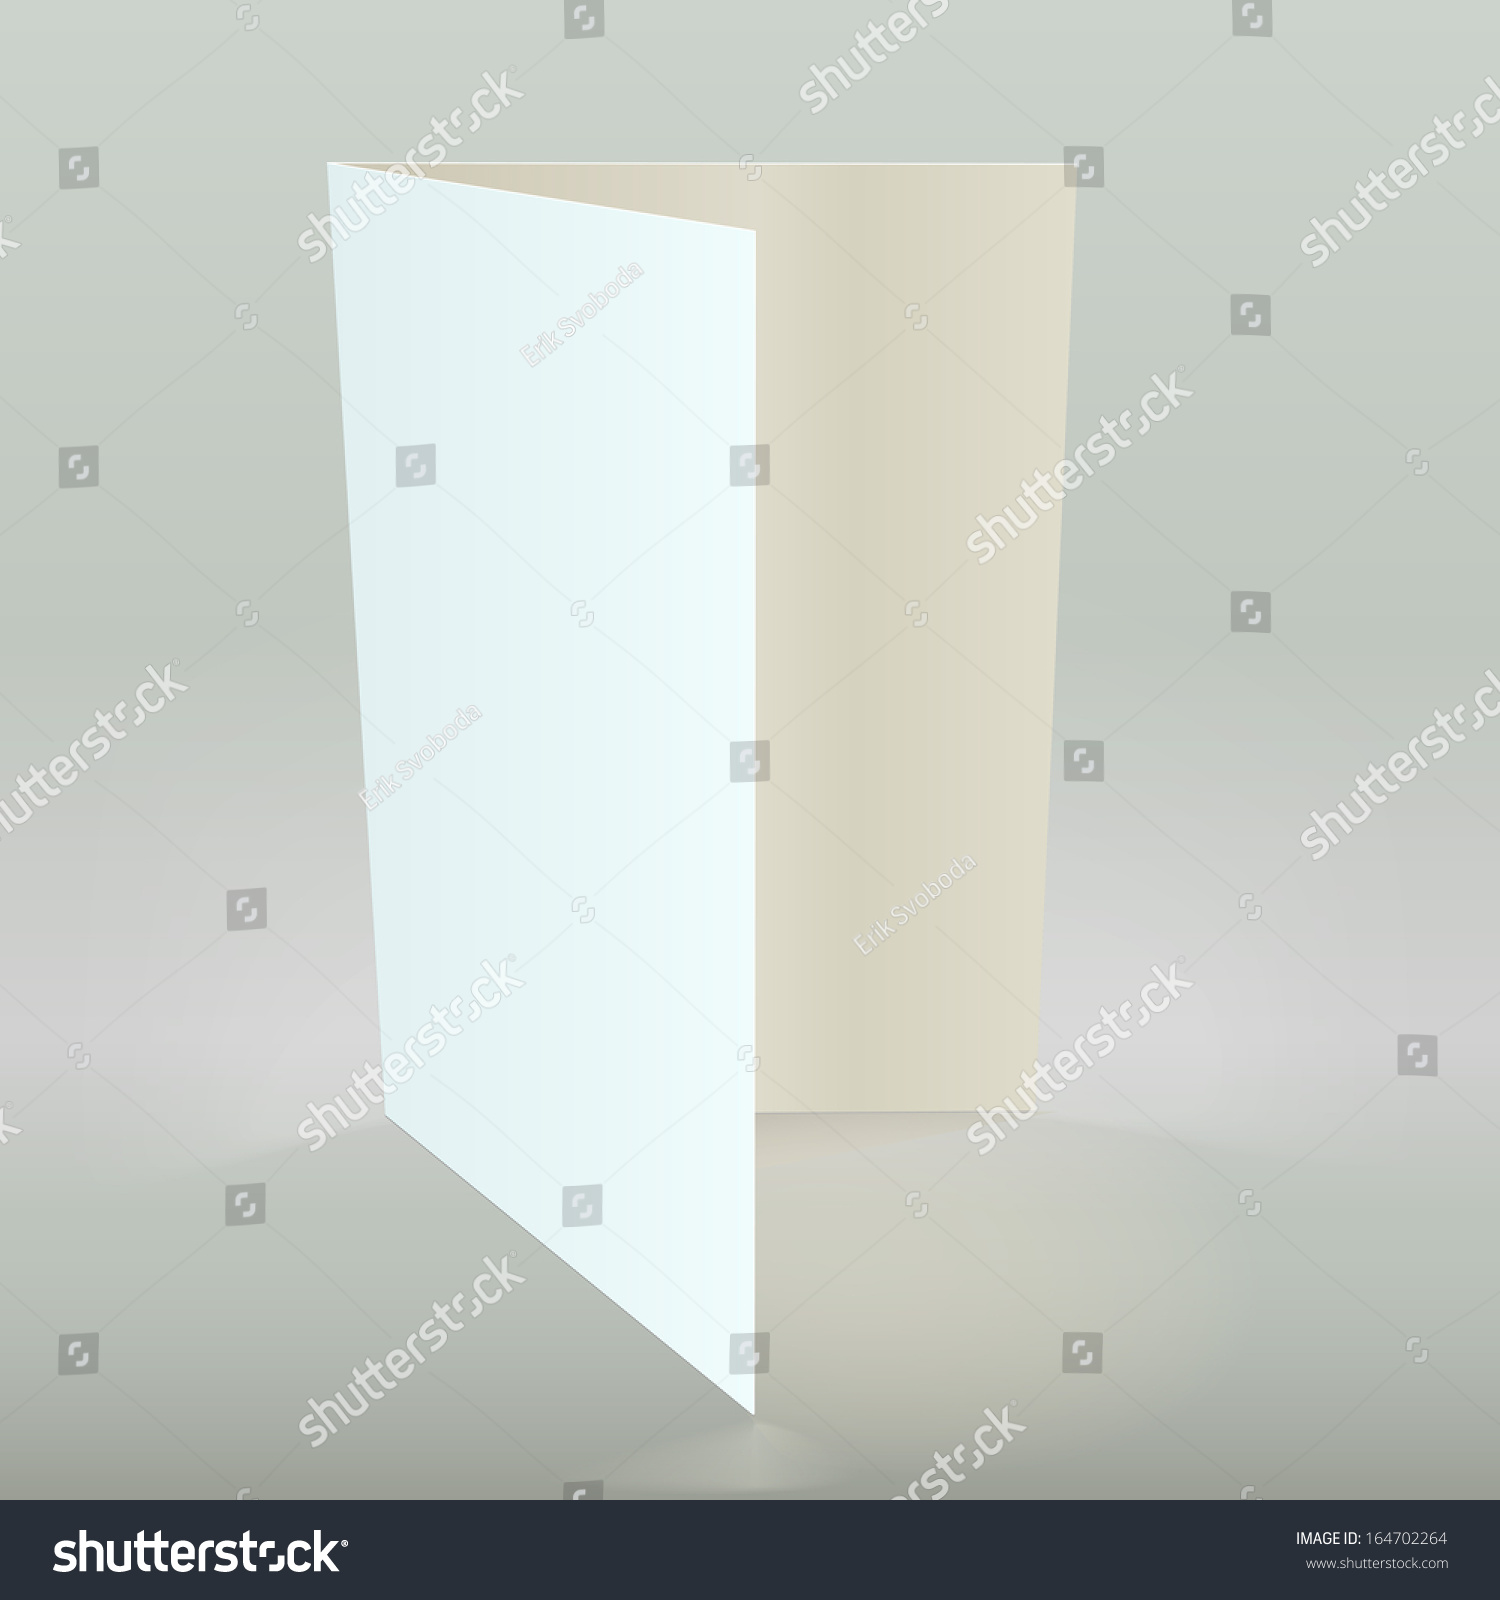 Empty Greeting Card Isolated Illustration Template Stock